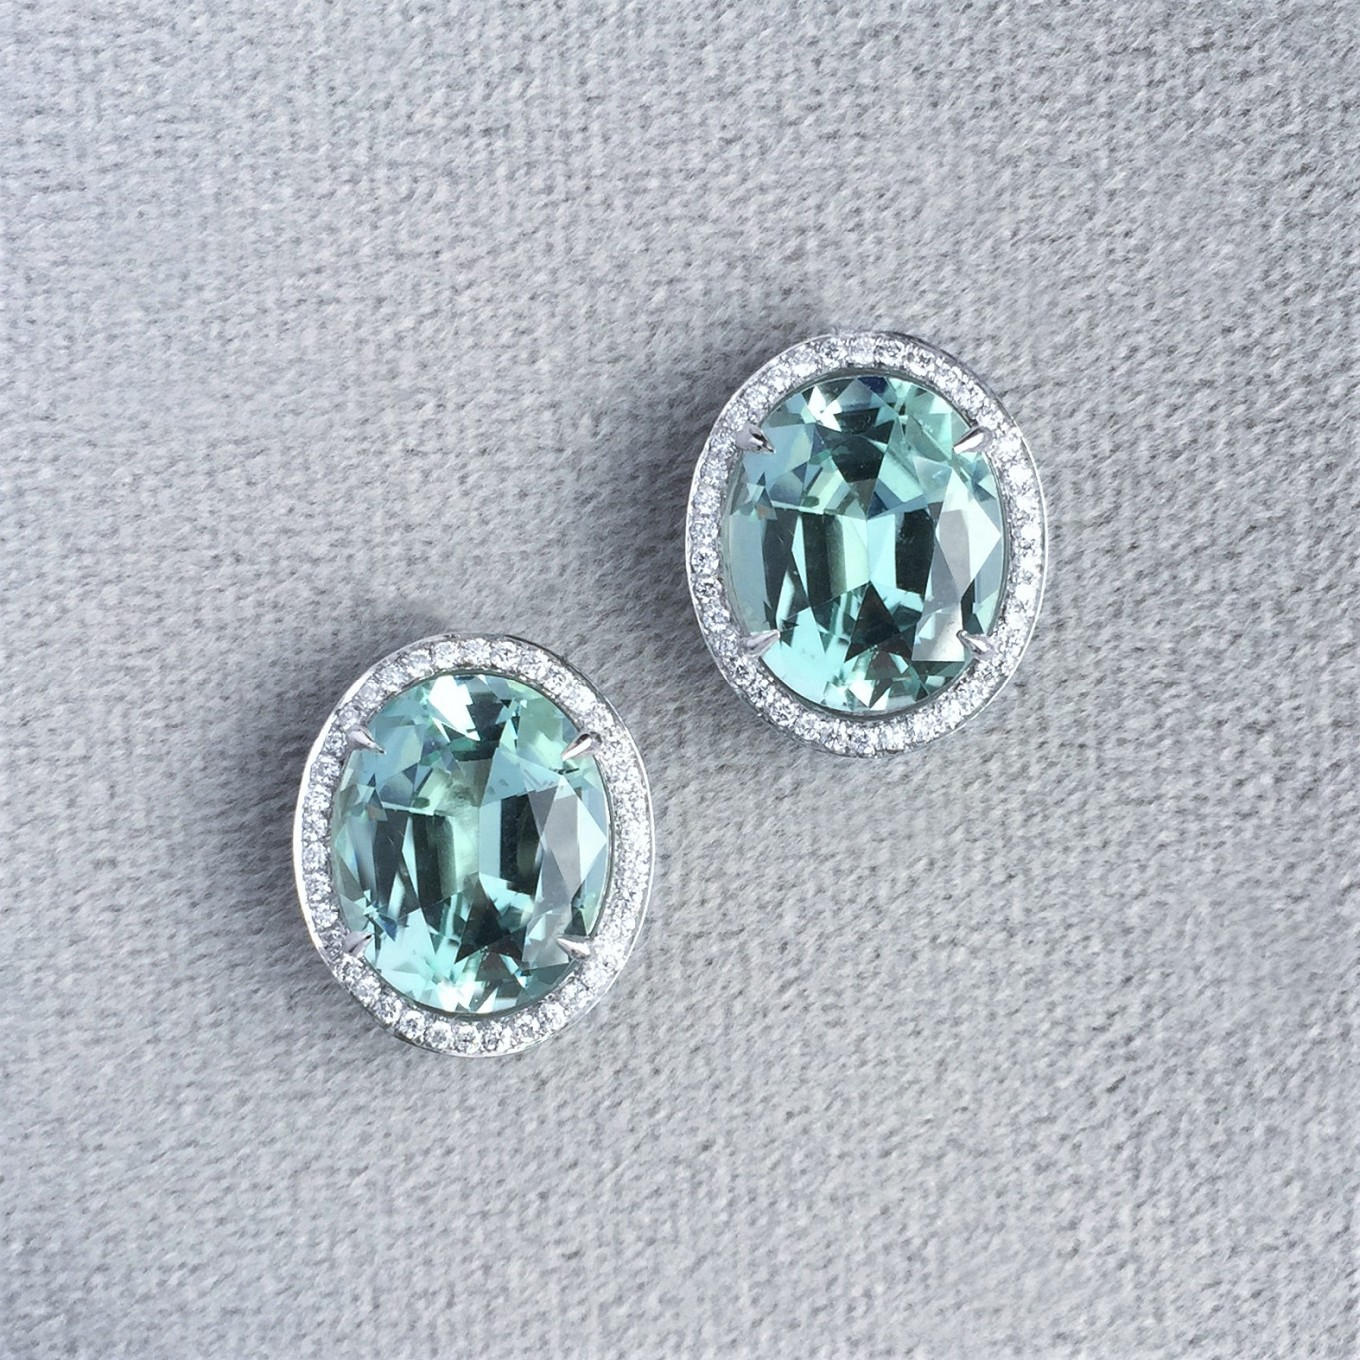 Oval mint green tourmaline & diamond earrings in white gold